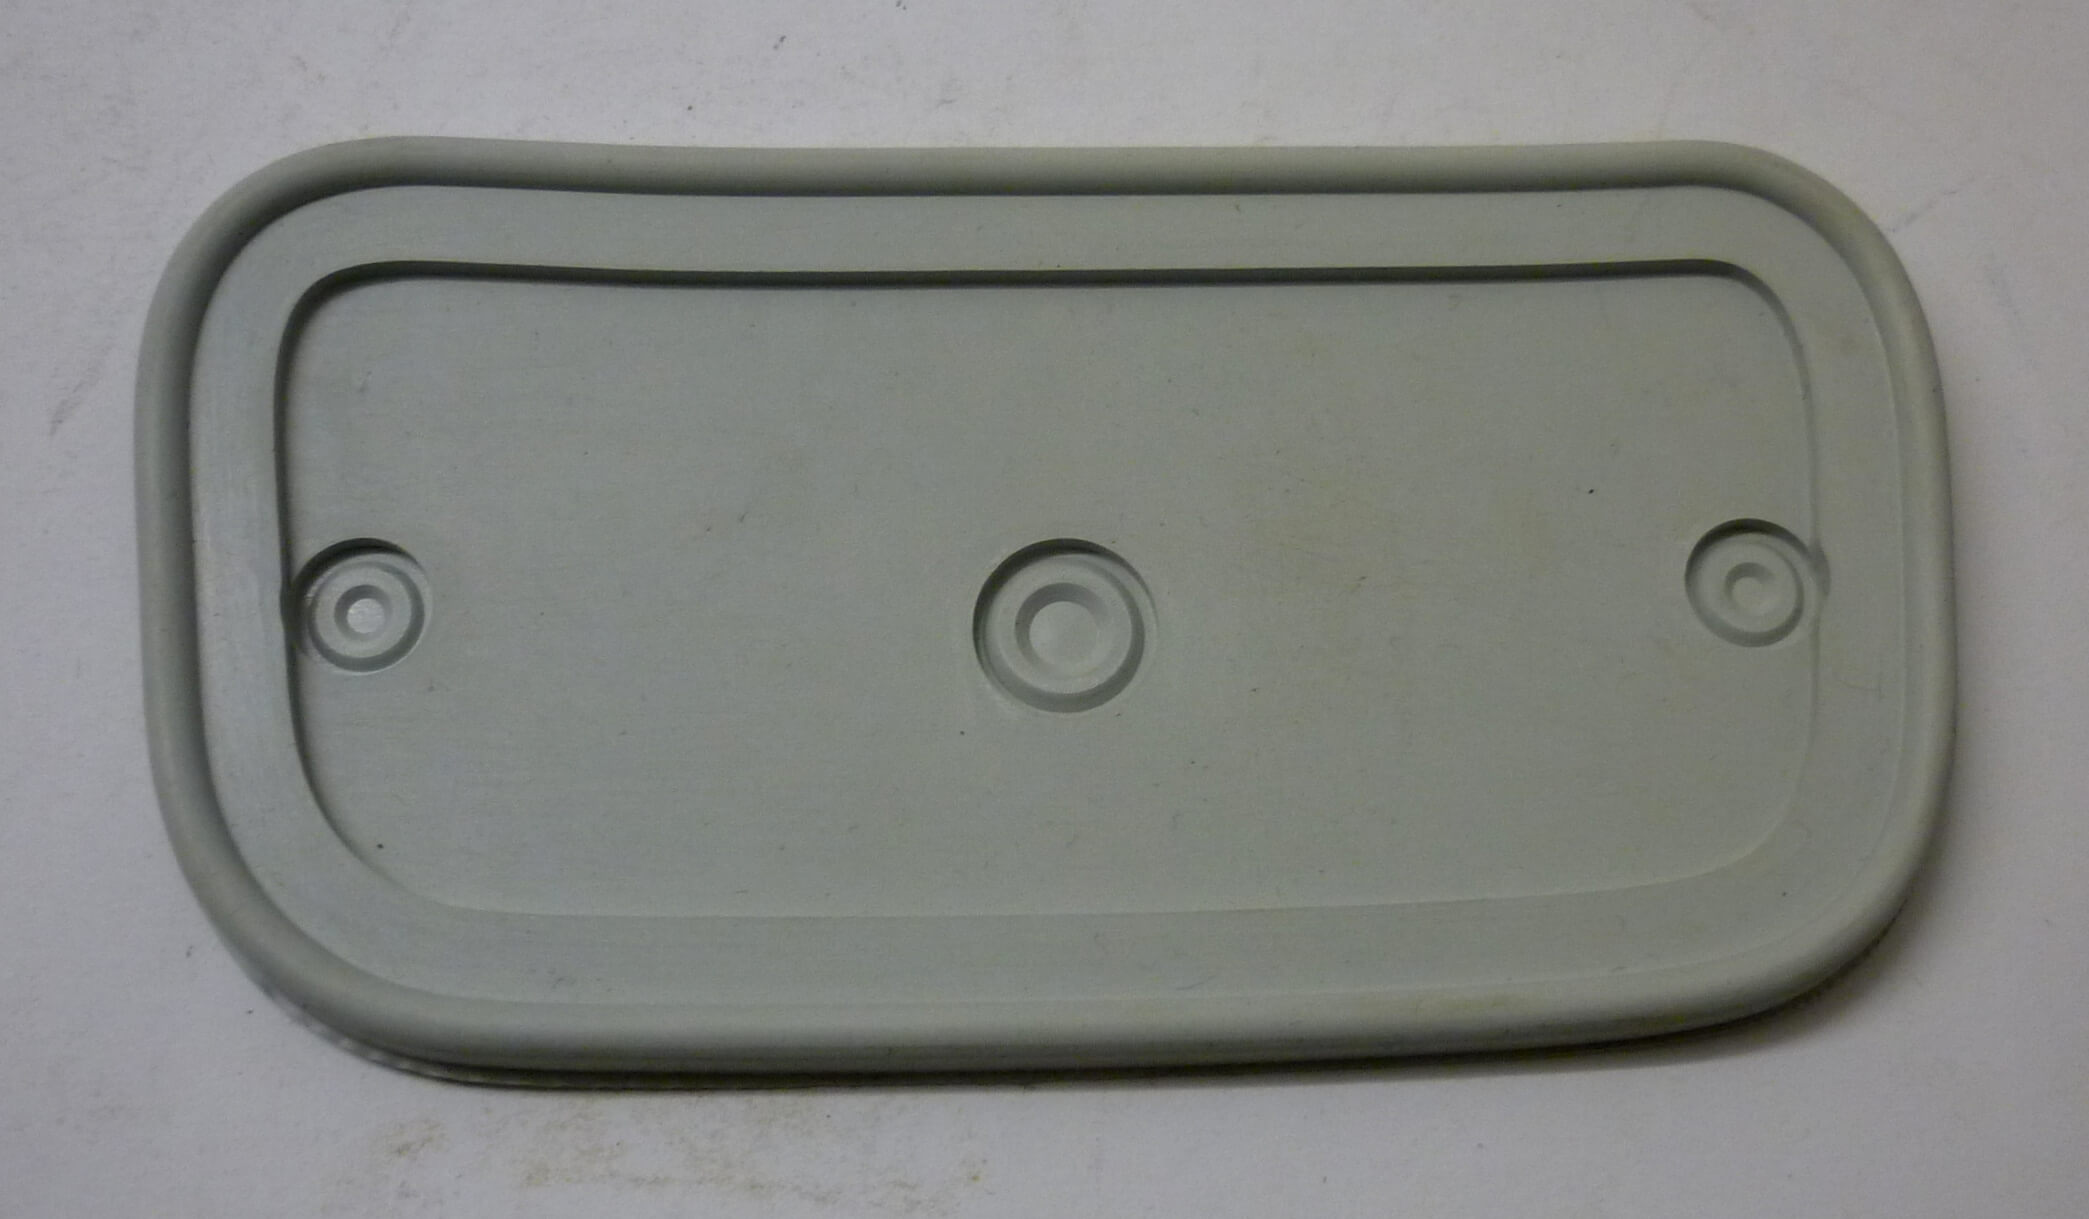 Taillight packing, Vespa 125 / 150 1954 > 1957